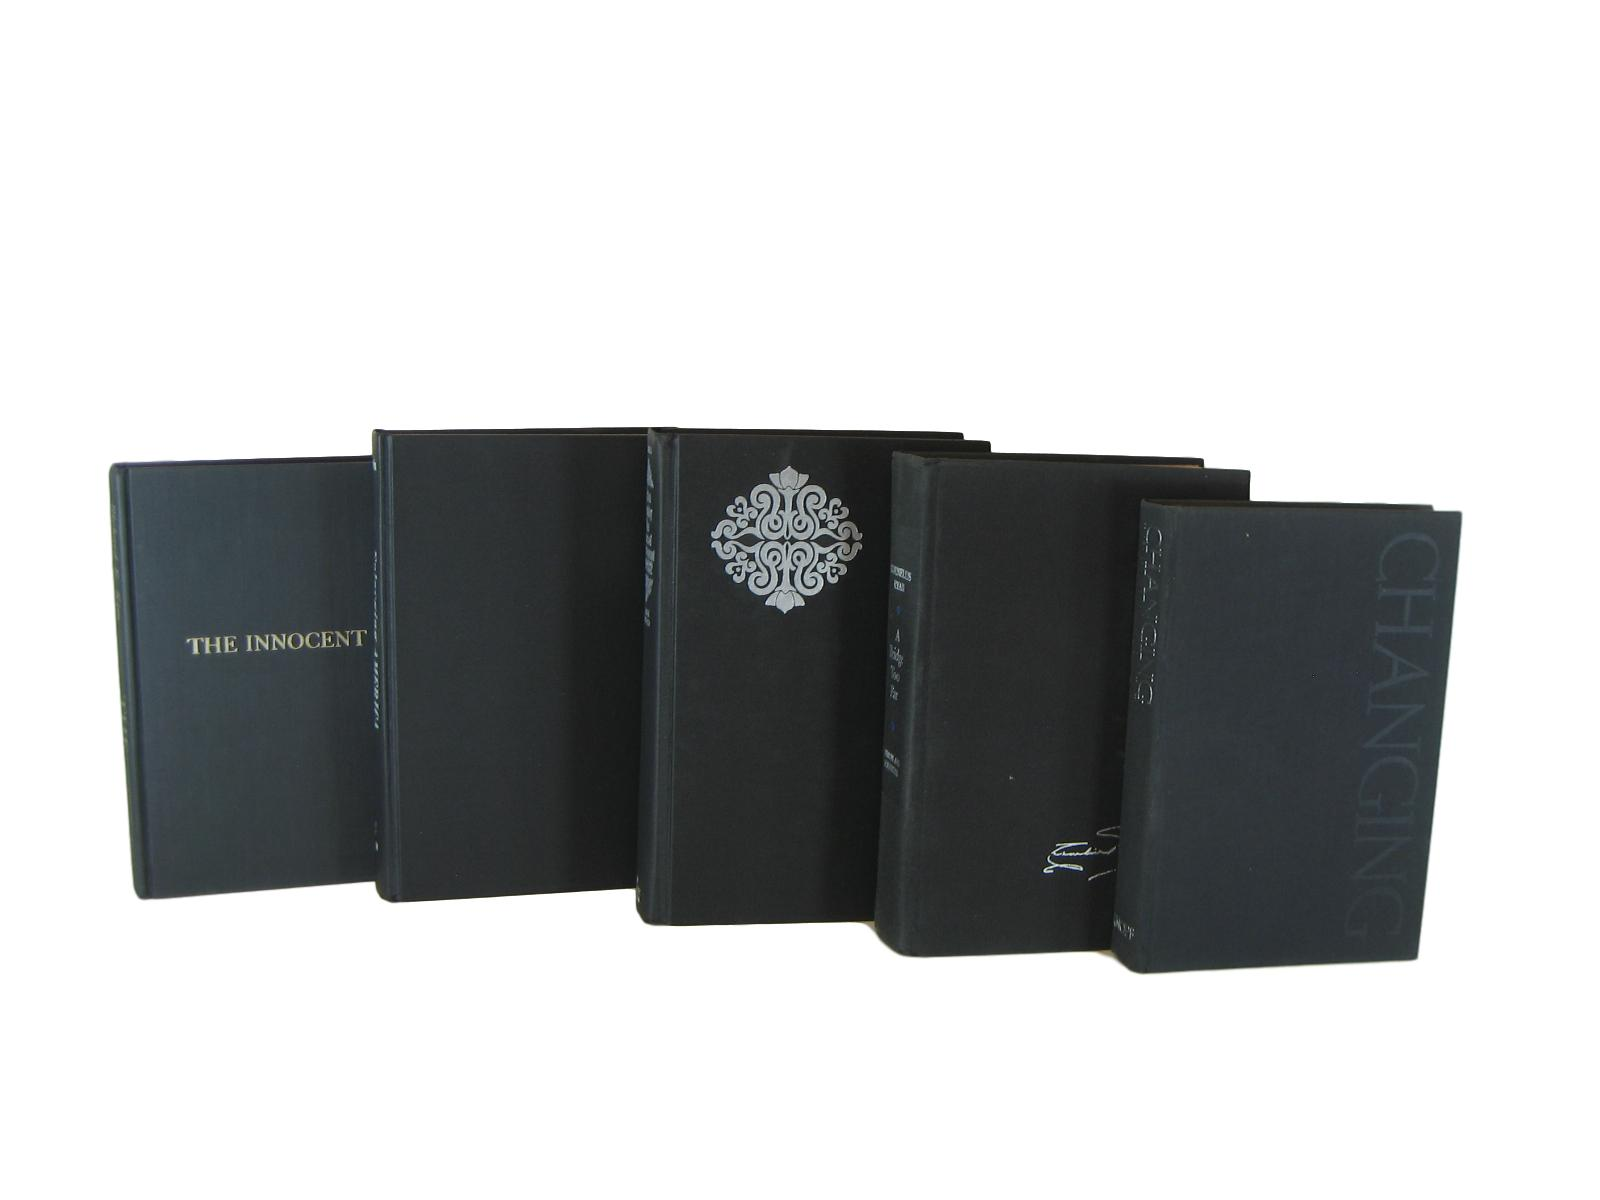 Black  Decorative Books for Mantel Decor, S/5 - Decades of Vintage